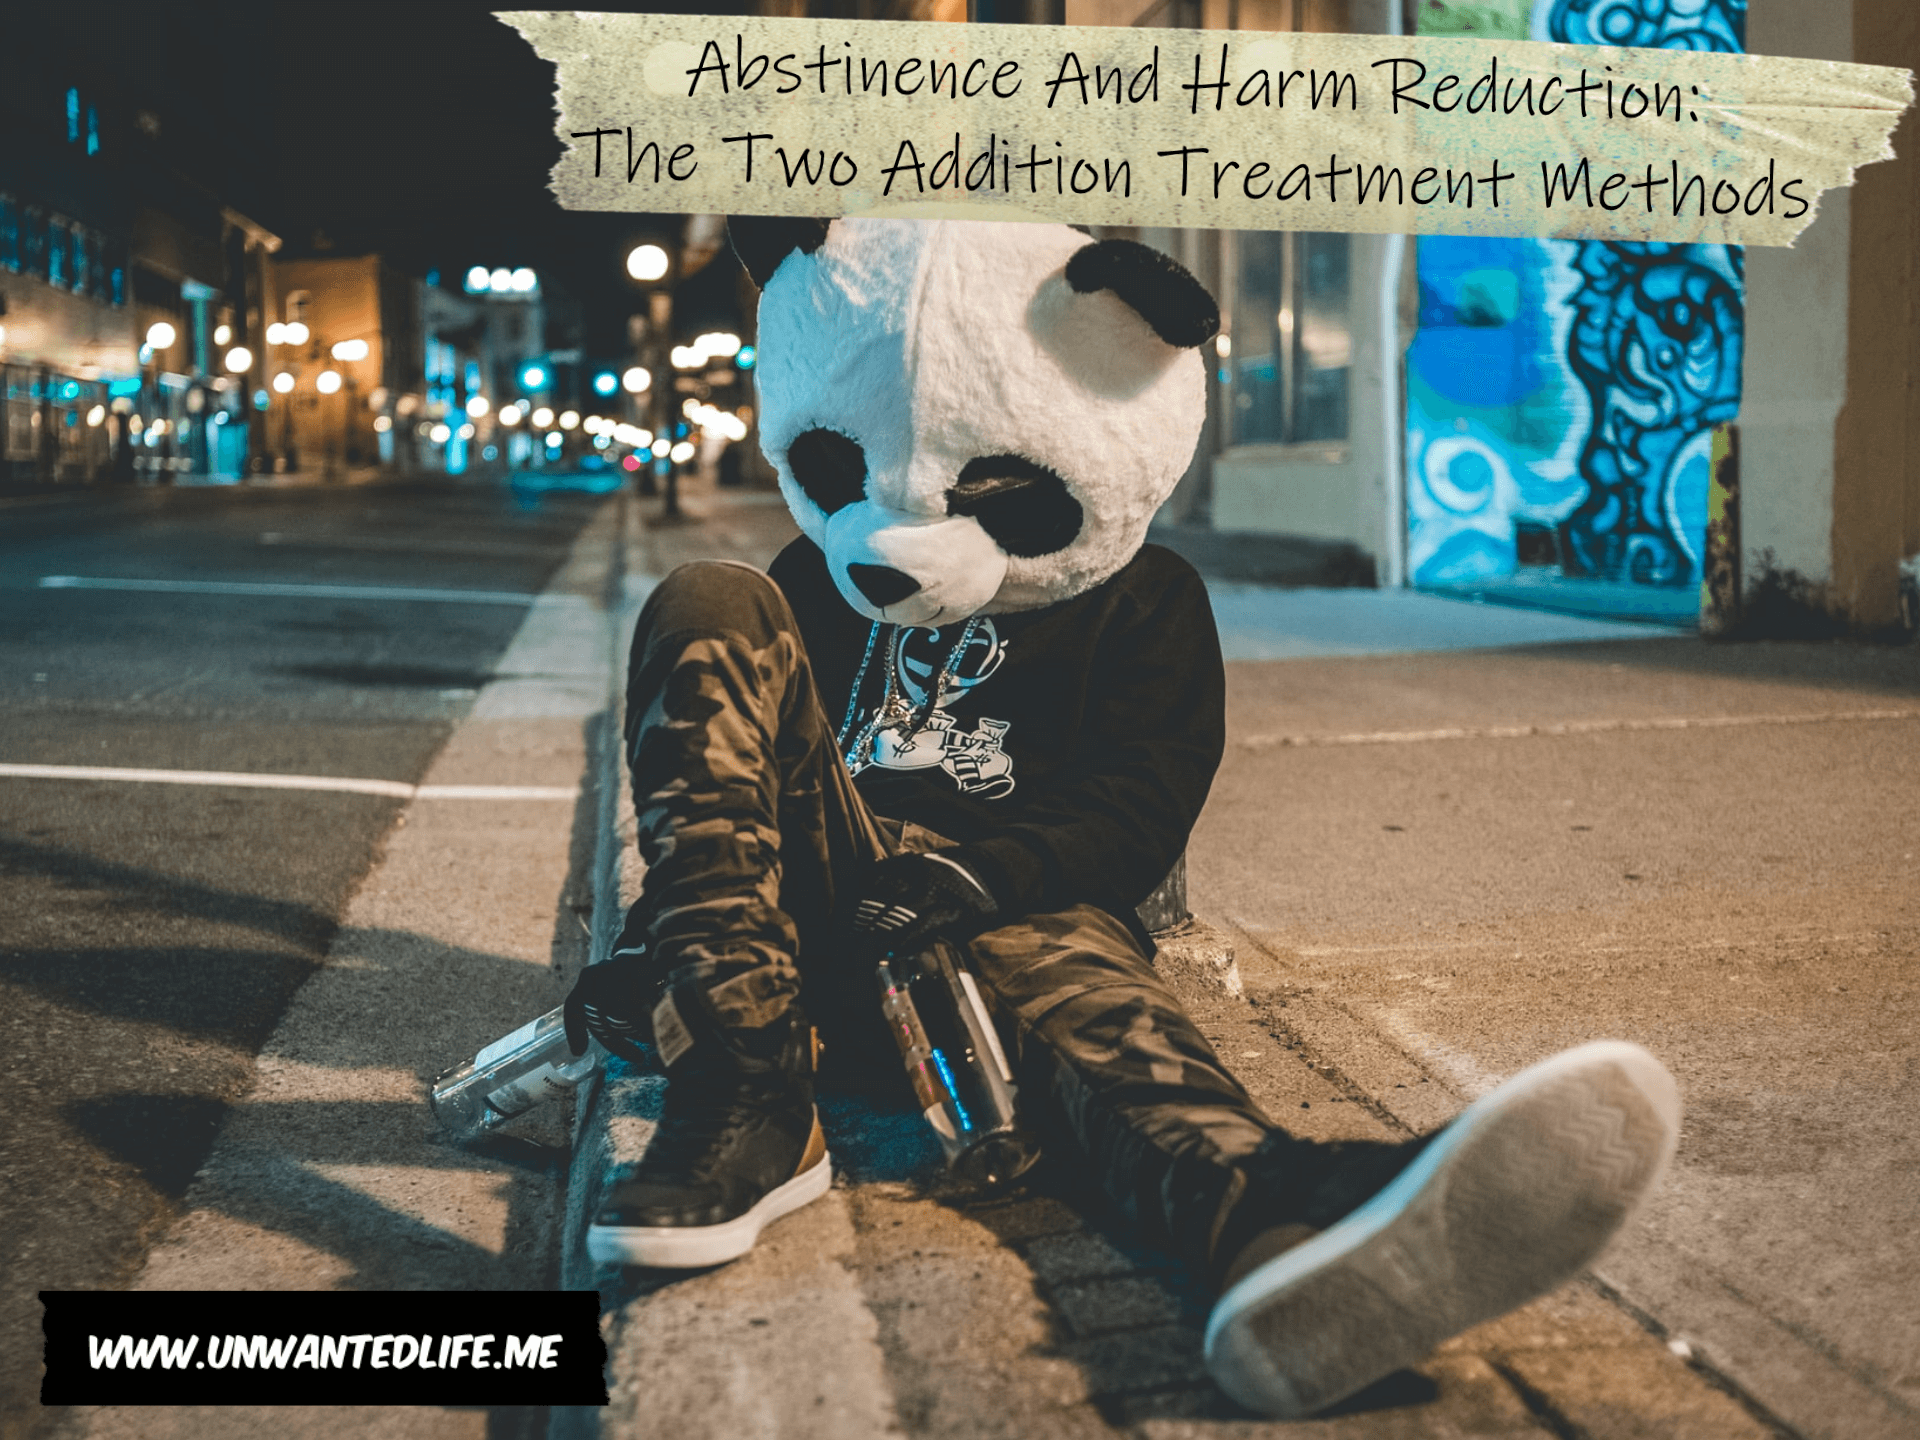 A photo of a person sitting at the side of the road holding to bottles of alcohol and wearing a furry panda head to represent the topic of the article - Abstinence And Harm Reduction: The Two Addition Treatment Methods